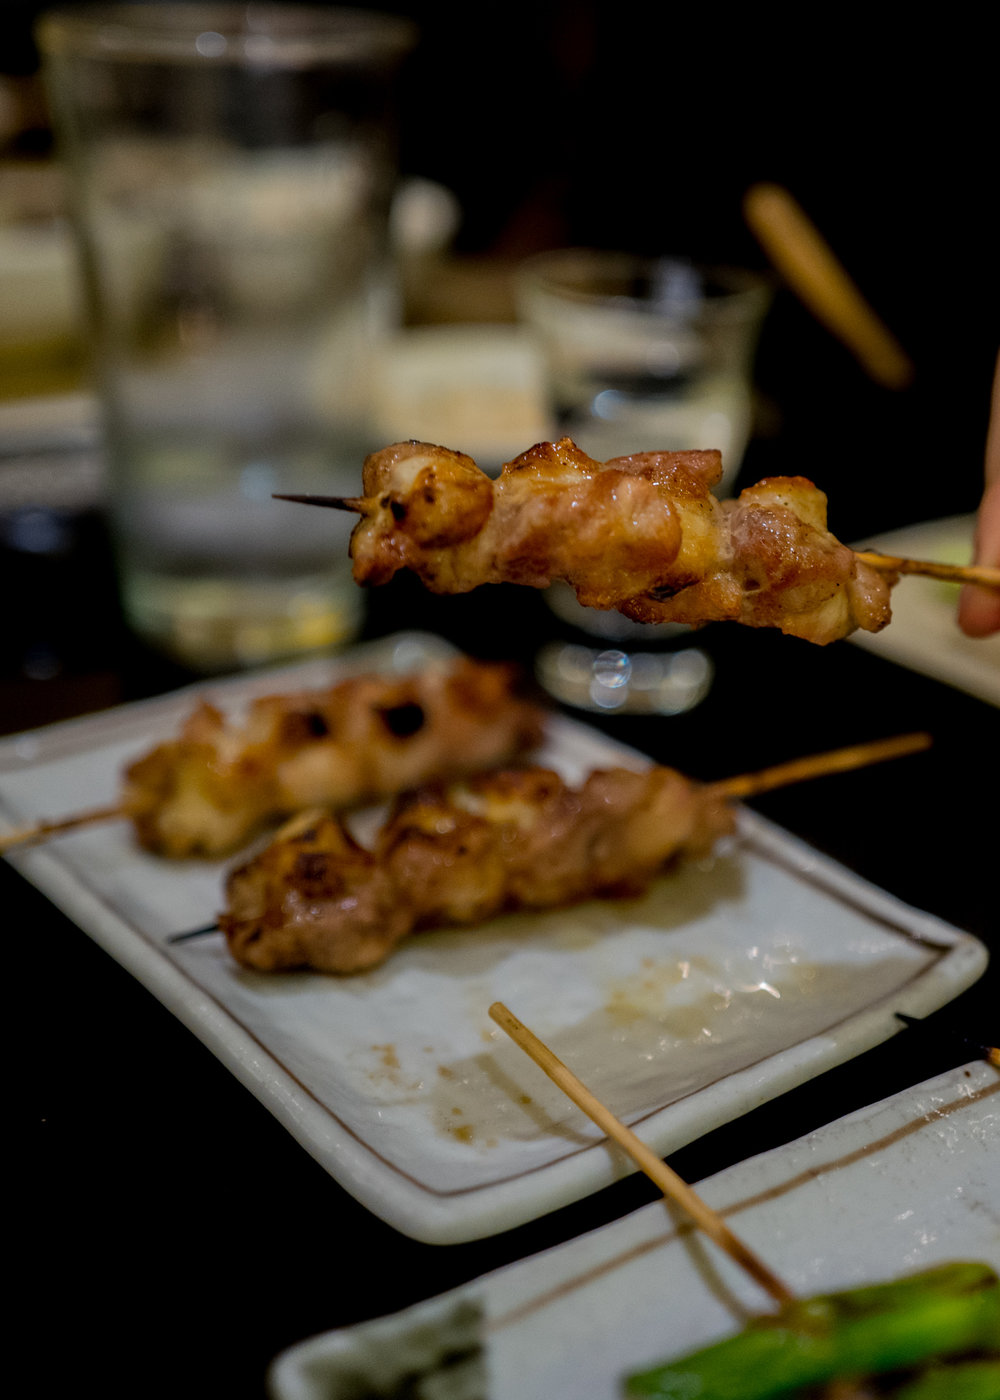 Chicken tendon skewers! One of my favorites!